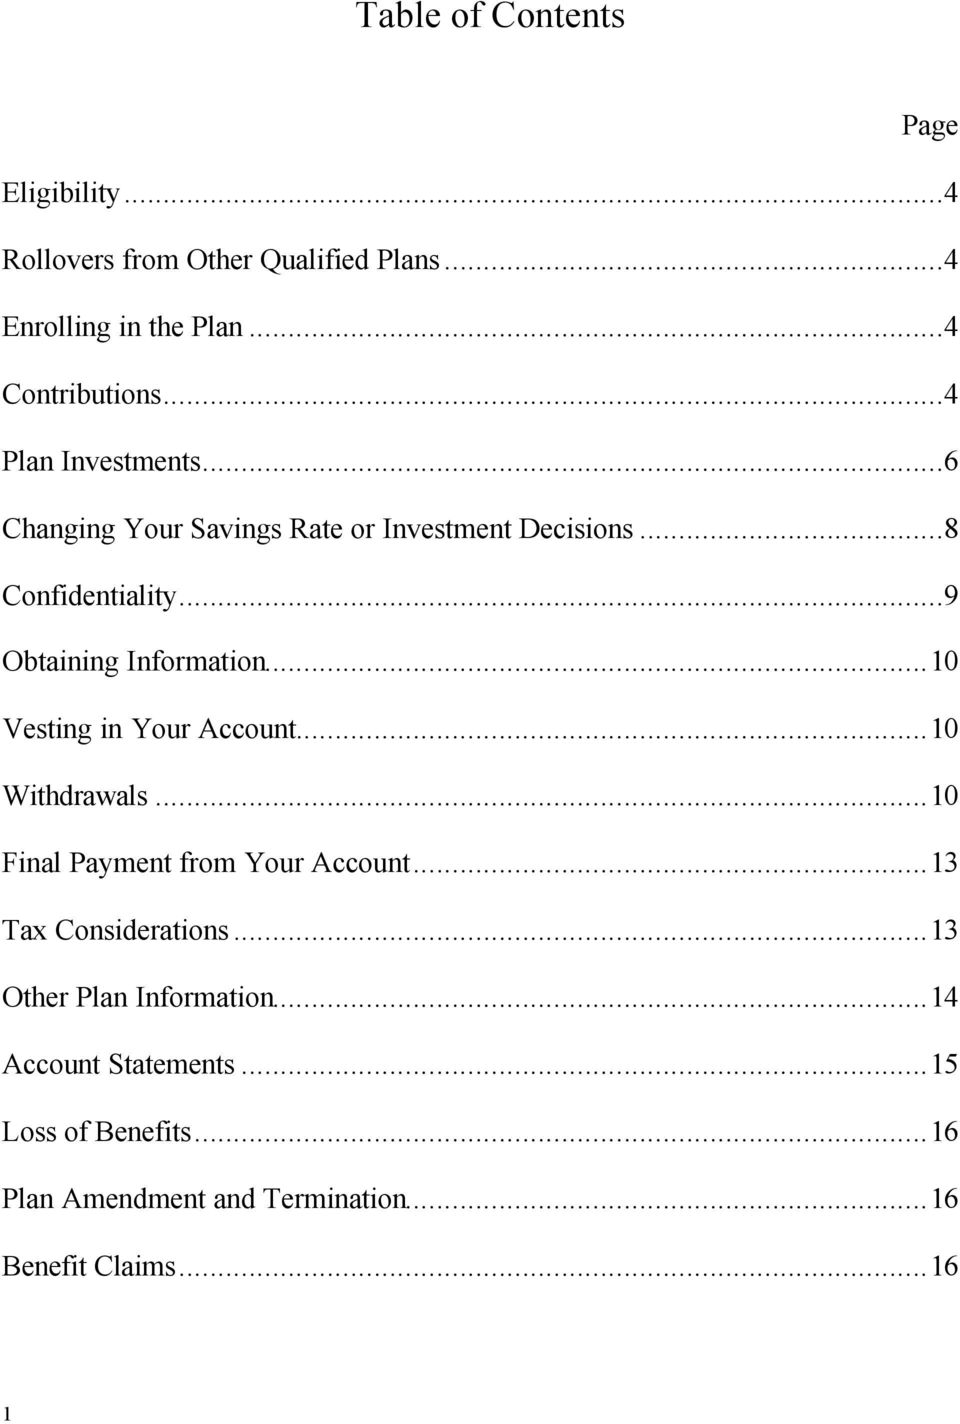 Union Pacific Agreement Employee 401(k) Retirement Thrift Plan - PDF